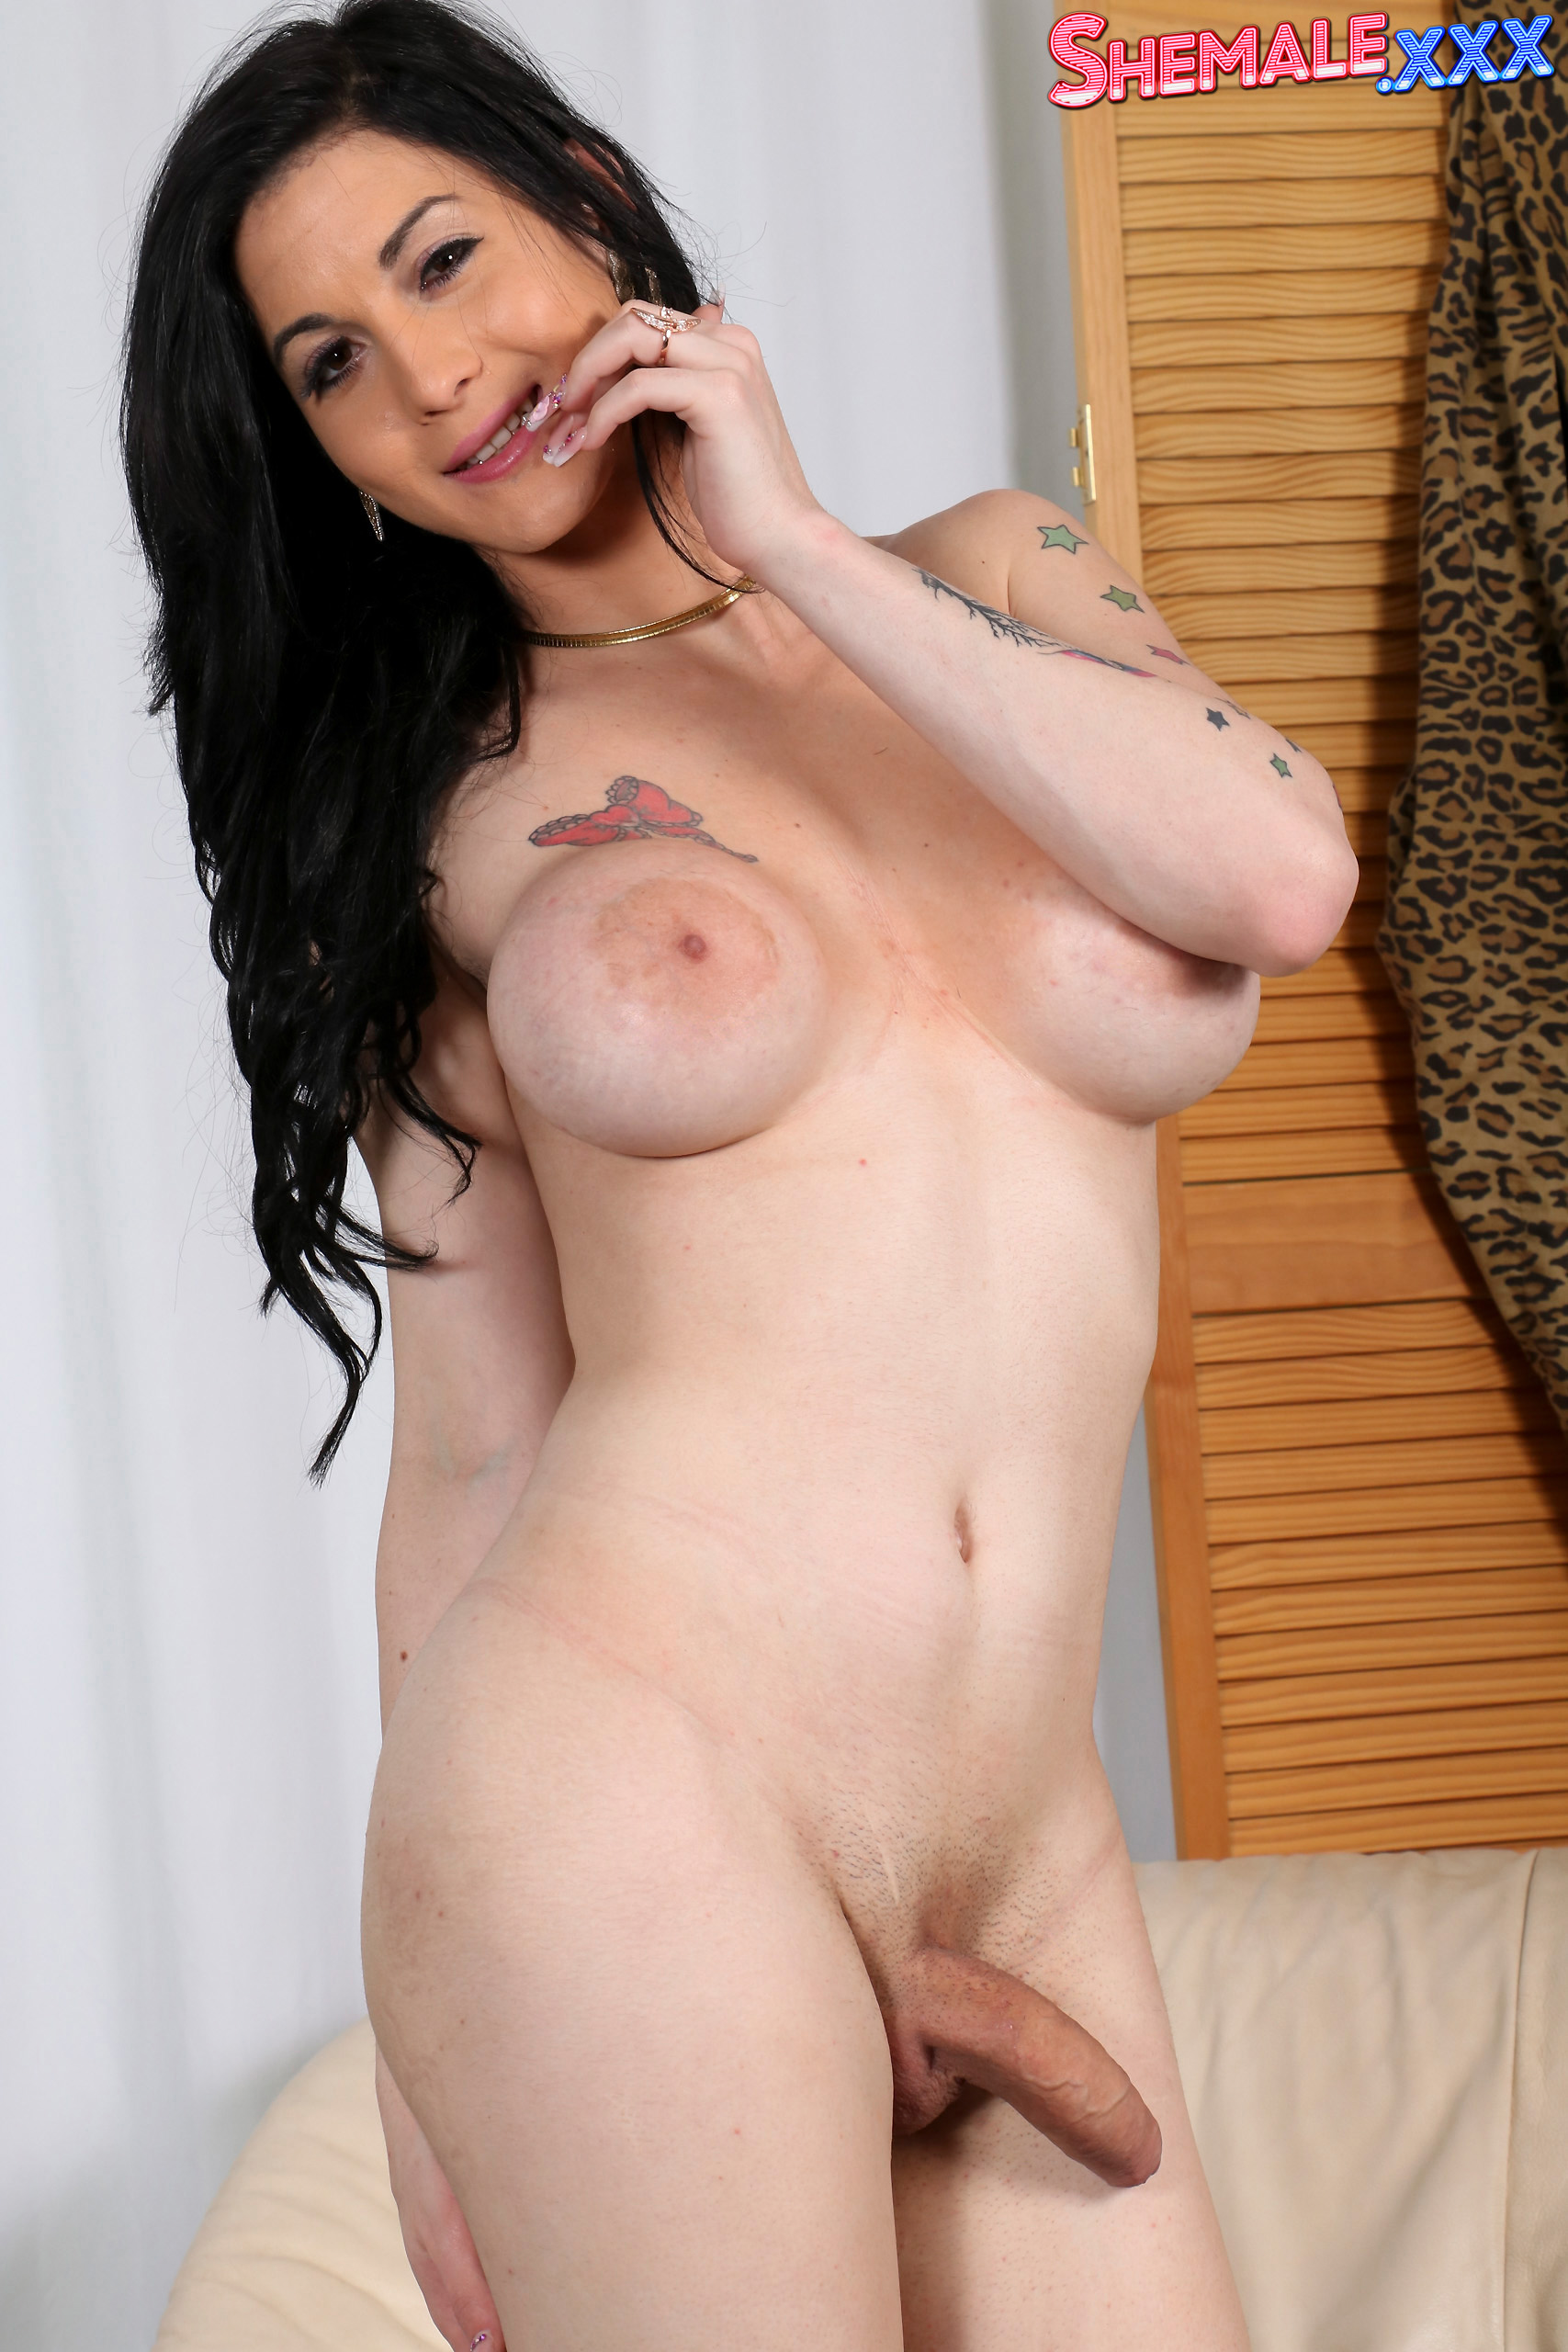 Hot shemales solo